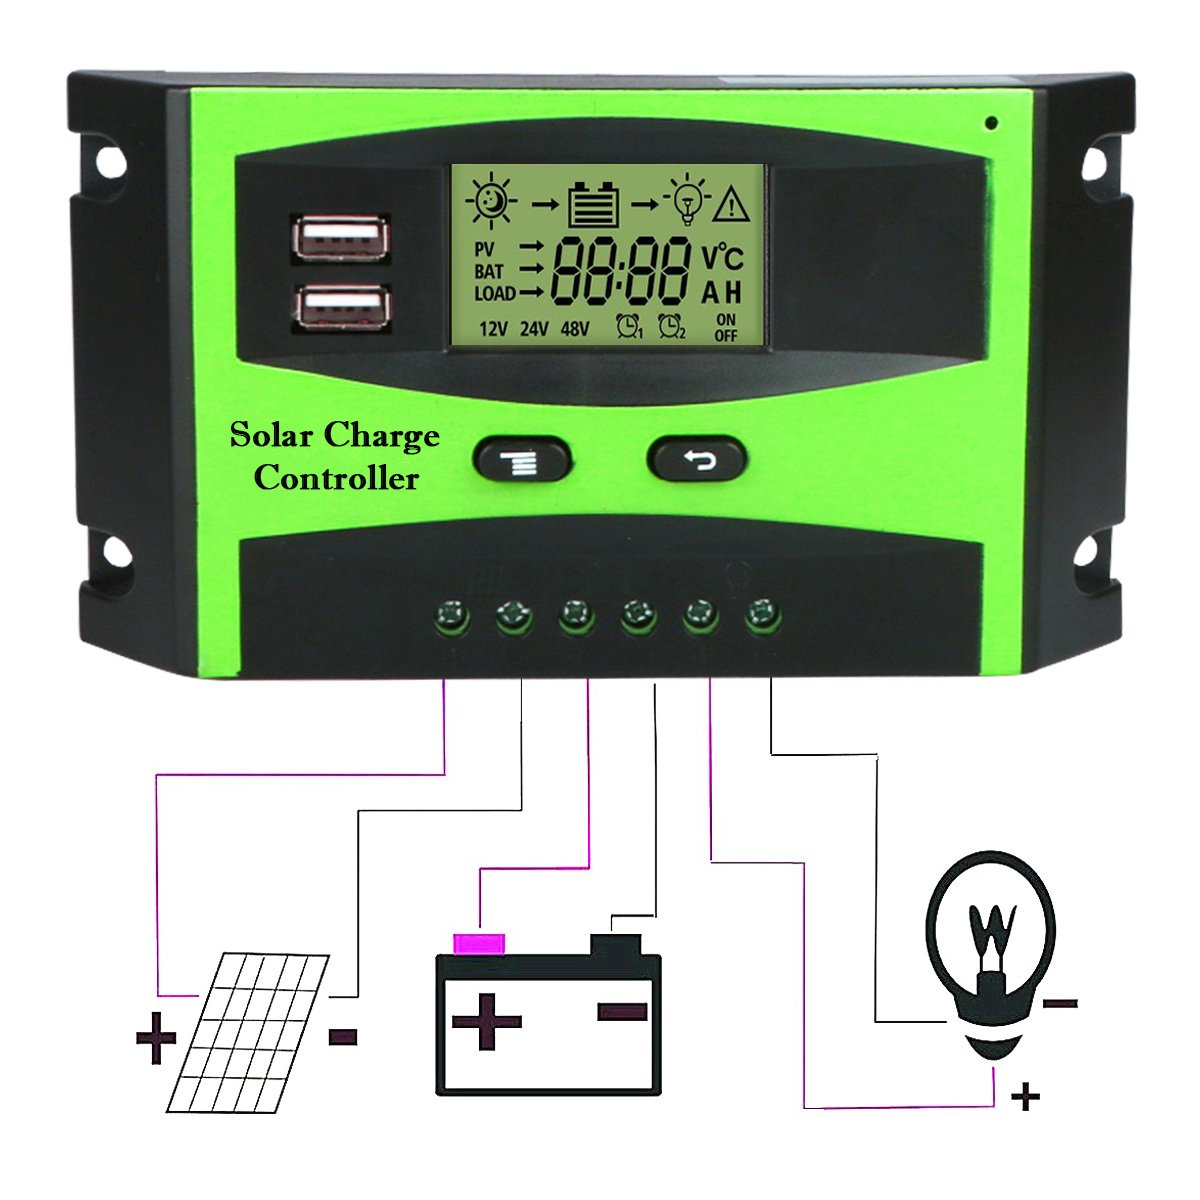 Aunifun 30A Solar Charge Controller Panel Regulator for Solar Panel System Smart Battery Voltage LCD Display Dual USD Port 12V/24V Waterproof